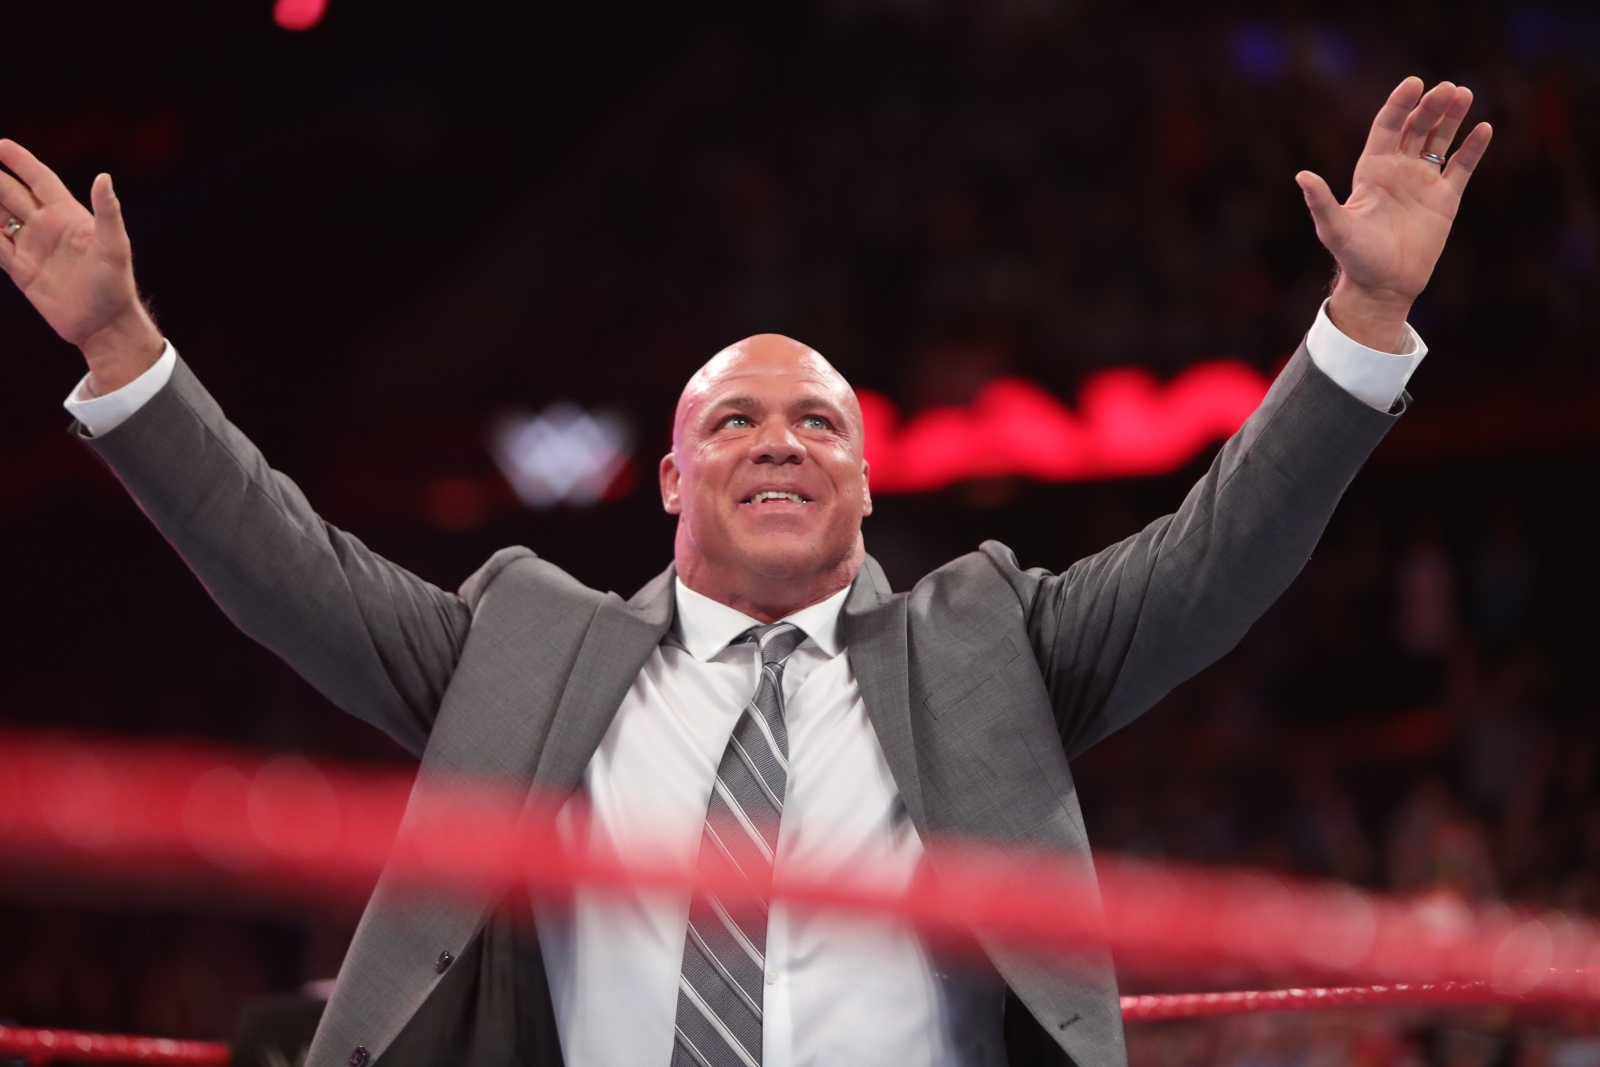 Wwe Kurt Angle S Return Fight Could Happen Near The End